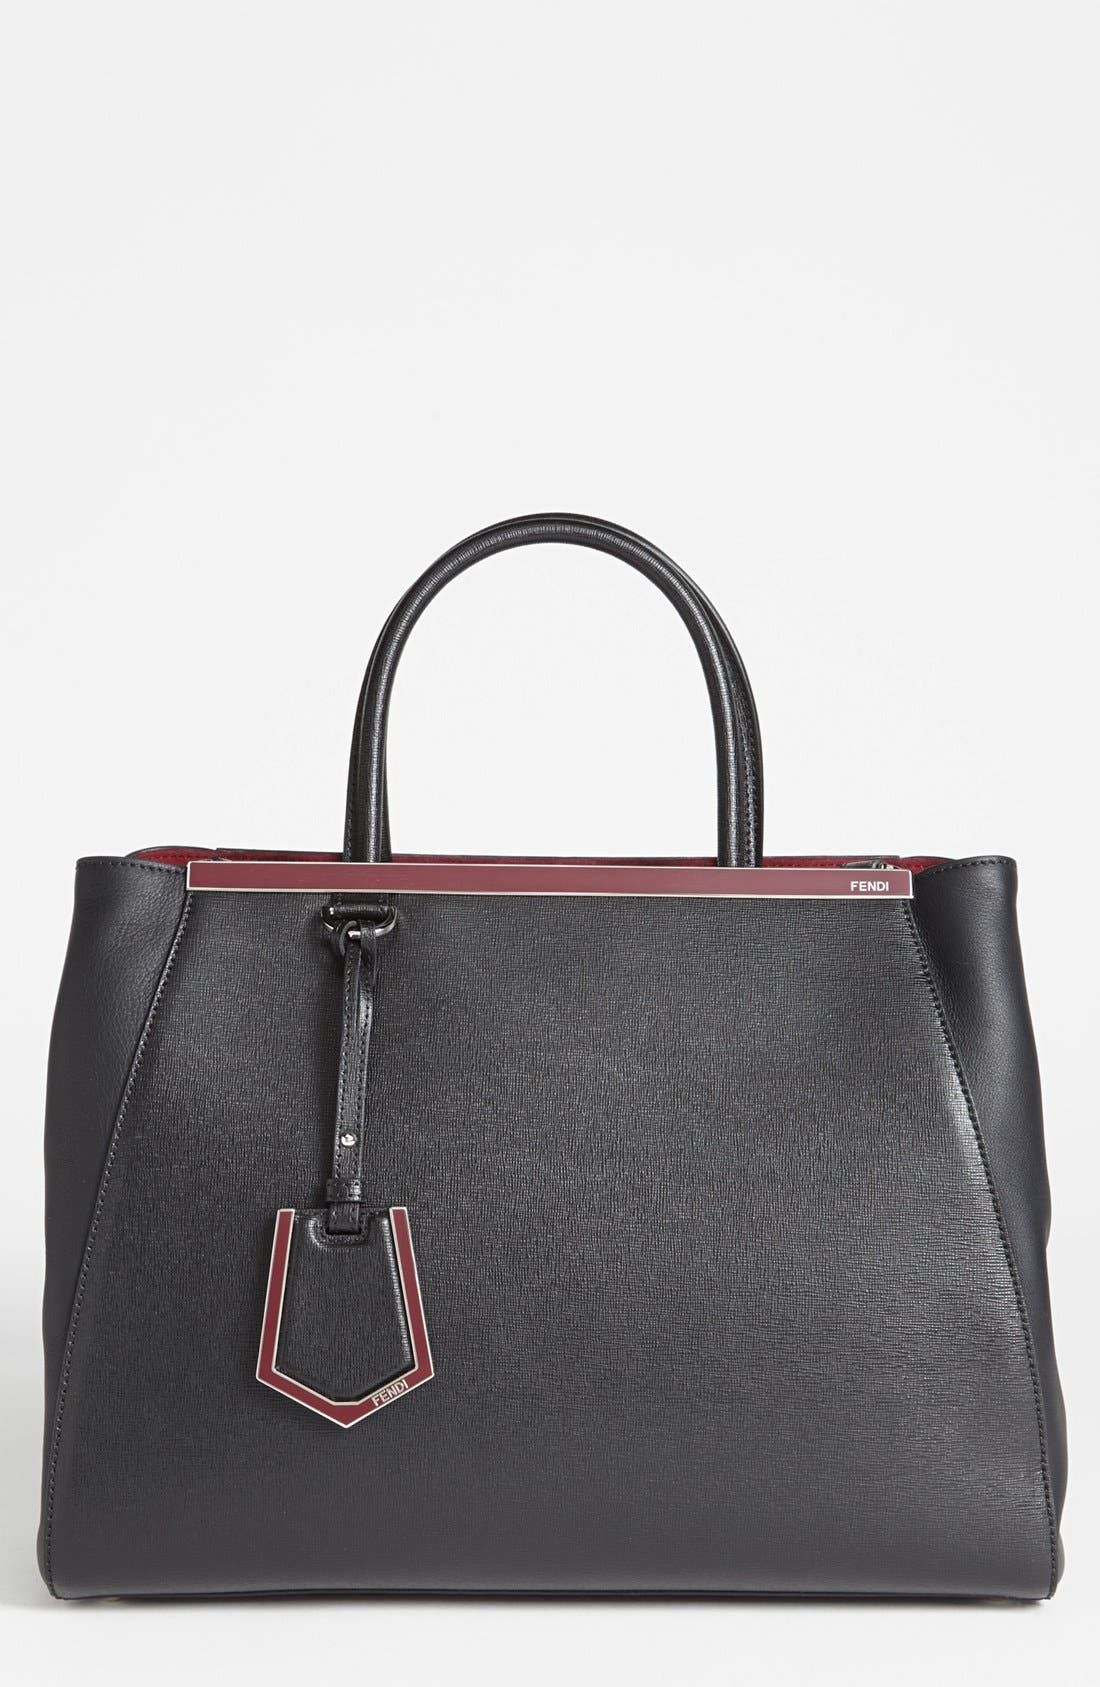 Main Image - Fendi '2Jours- Medium' Leather Shopper